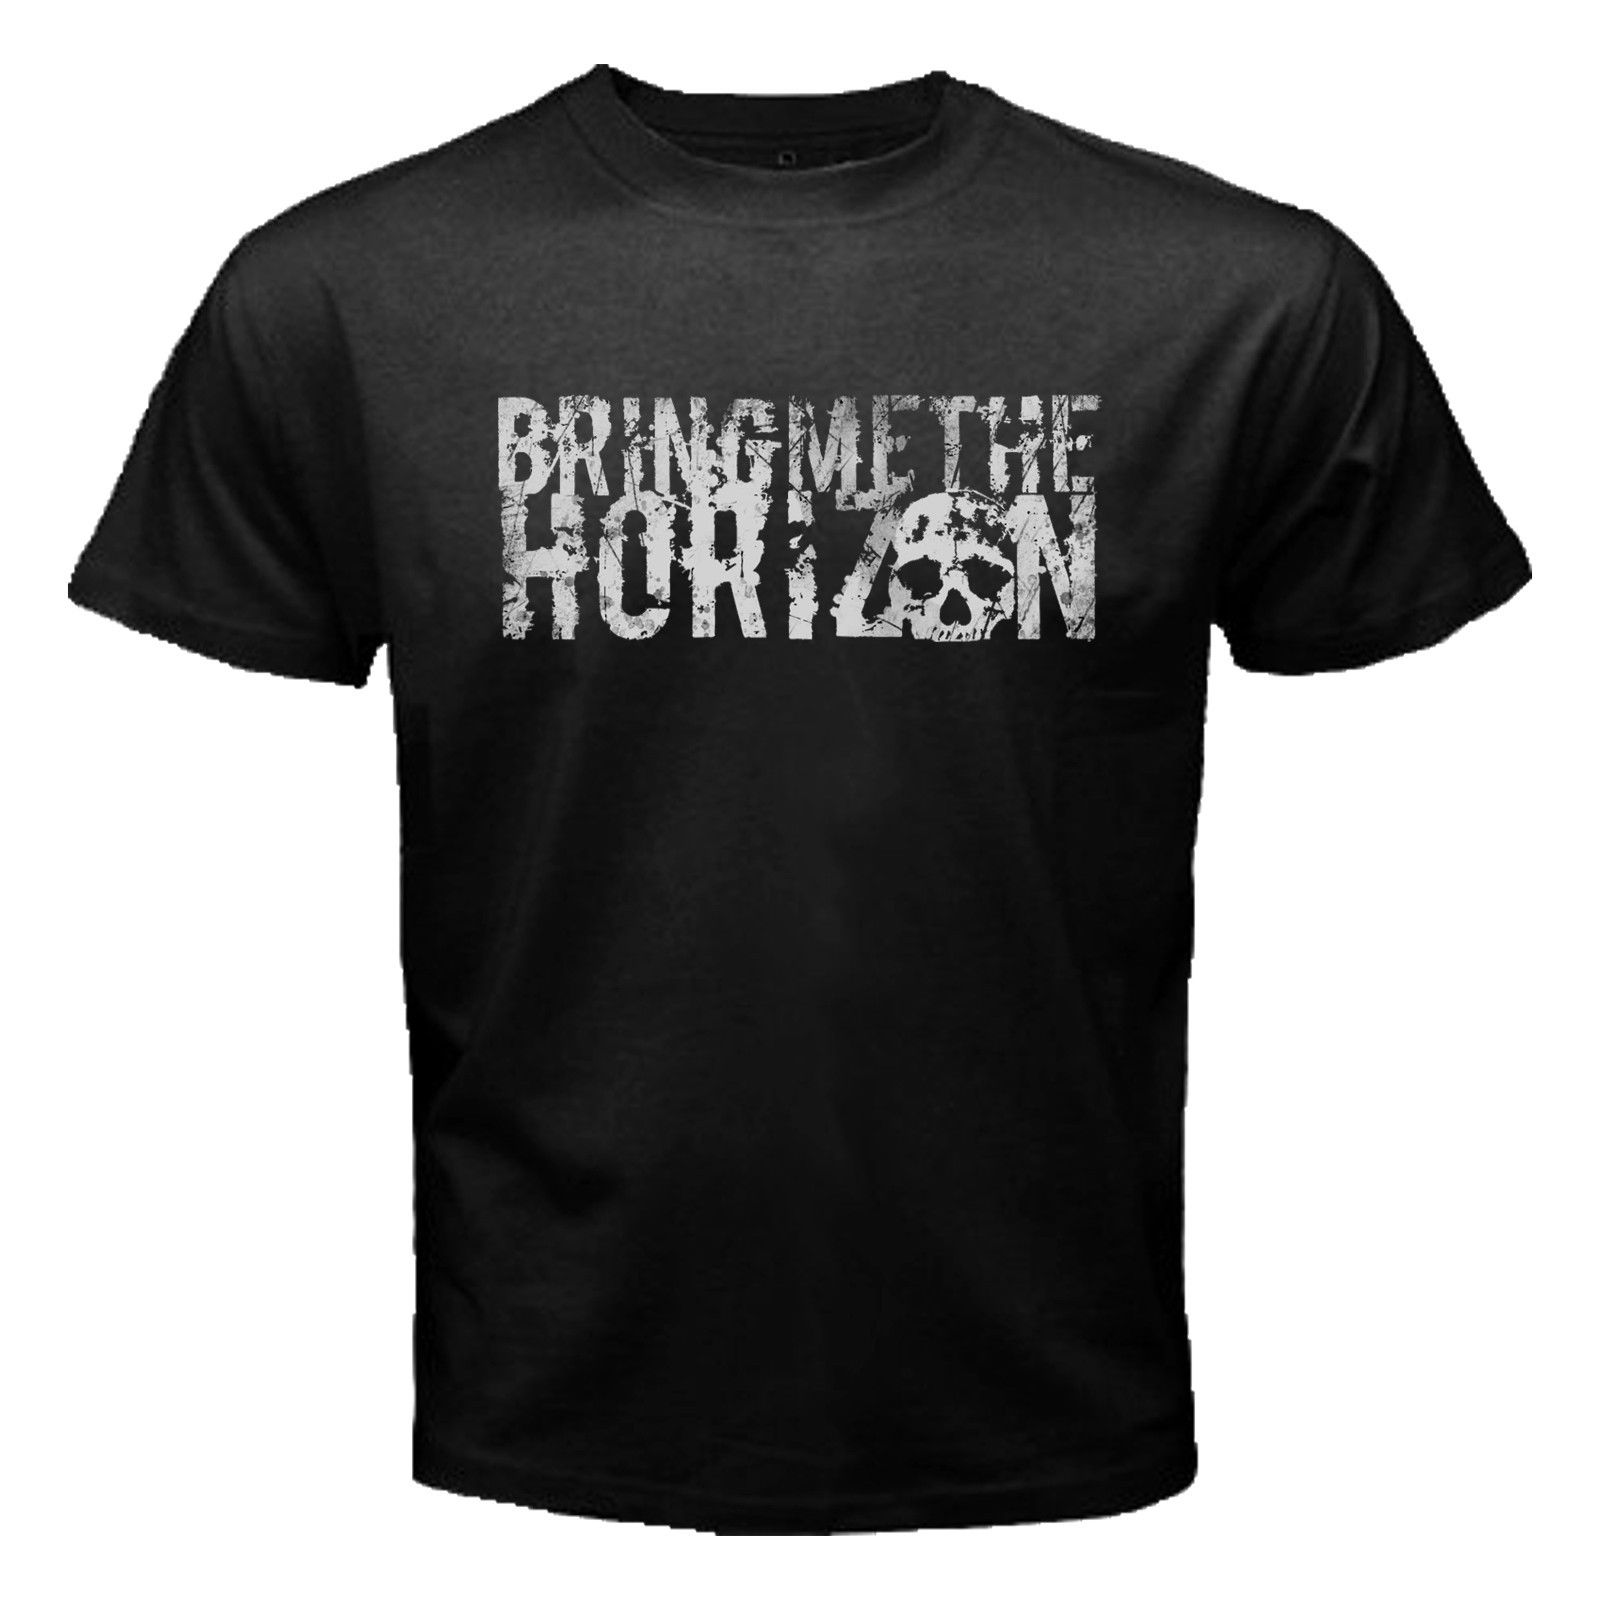 New Bring Me The Horizon British Metalcore Rock Band Men's Black T Shirt O-Neck Oversize Style Tee Shirts Styles image